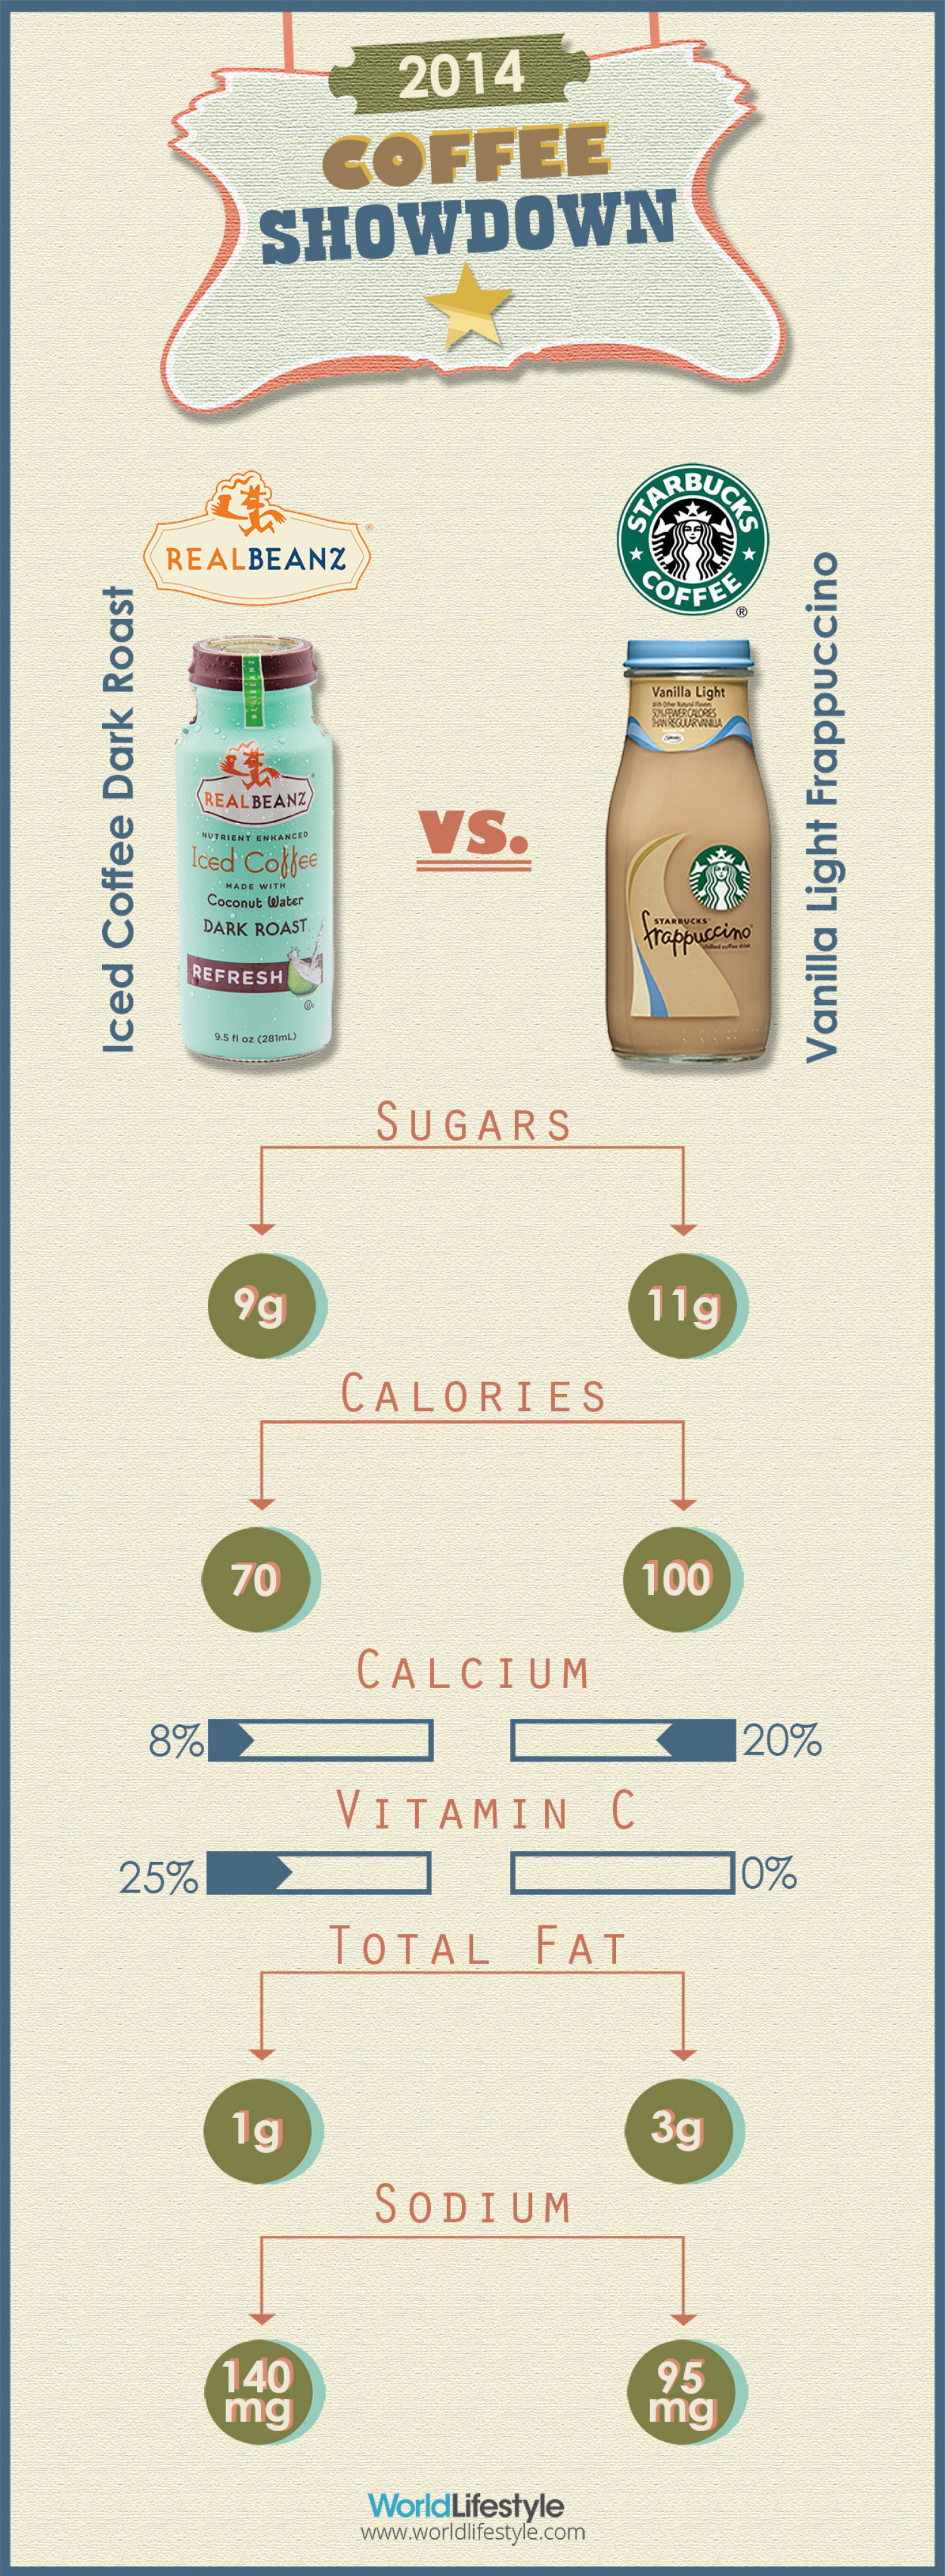 2014 Coffee Showdown Infographic